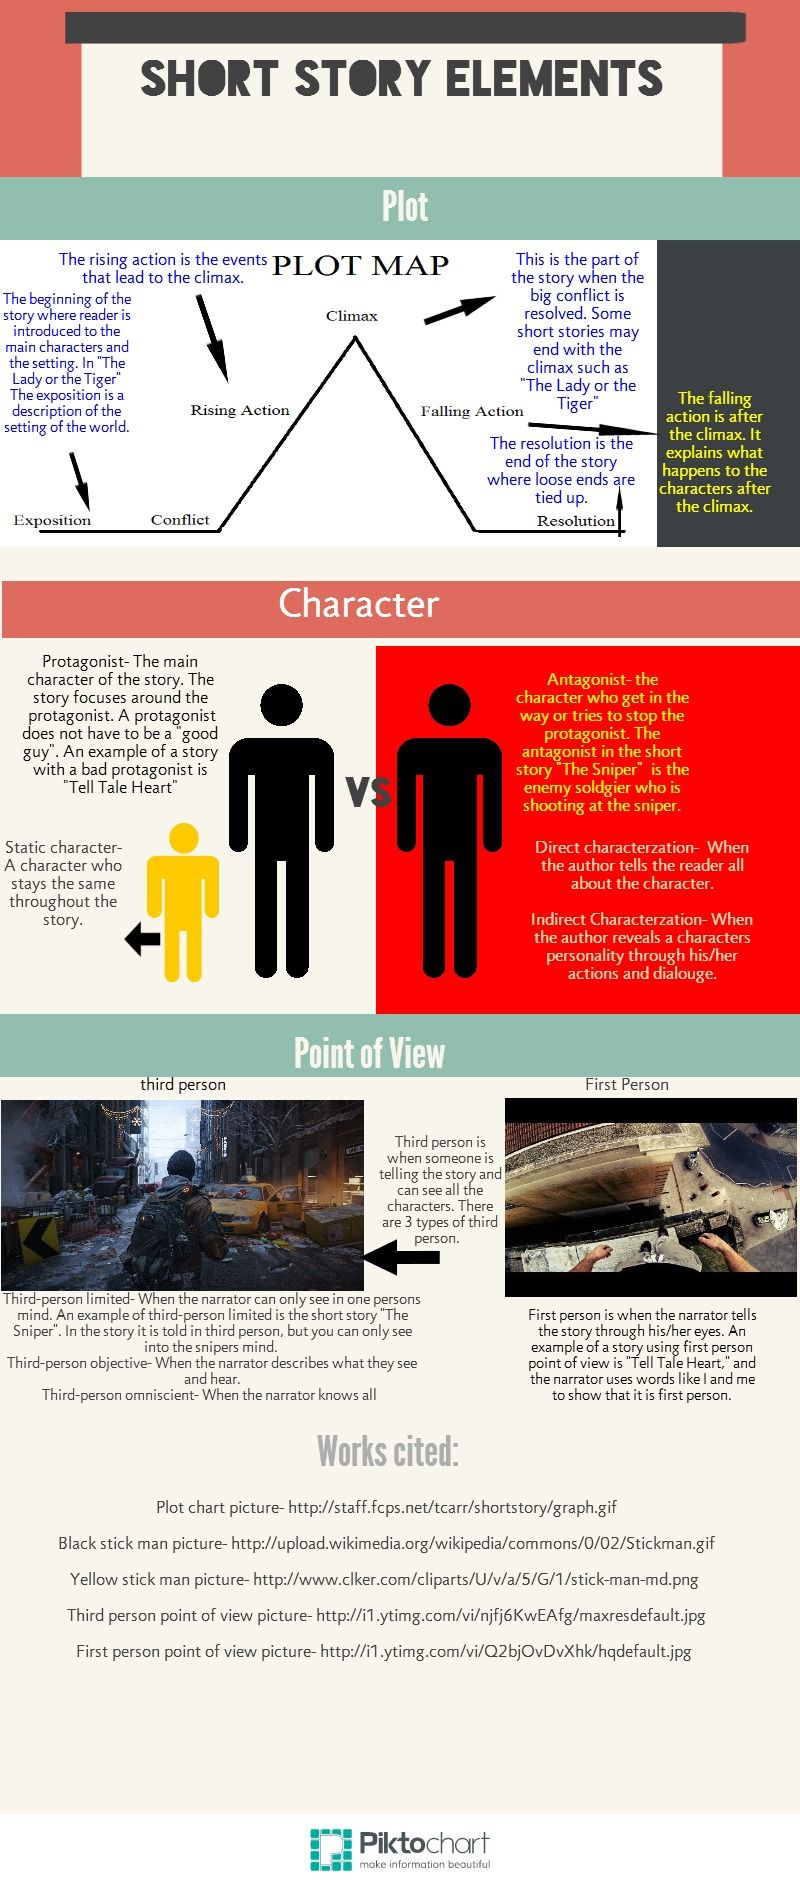 Elements Of Short Story Infographic Project With Images